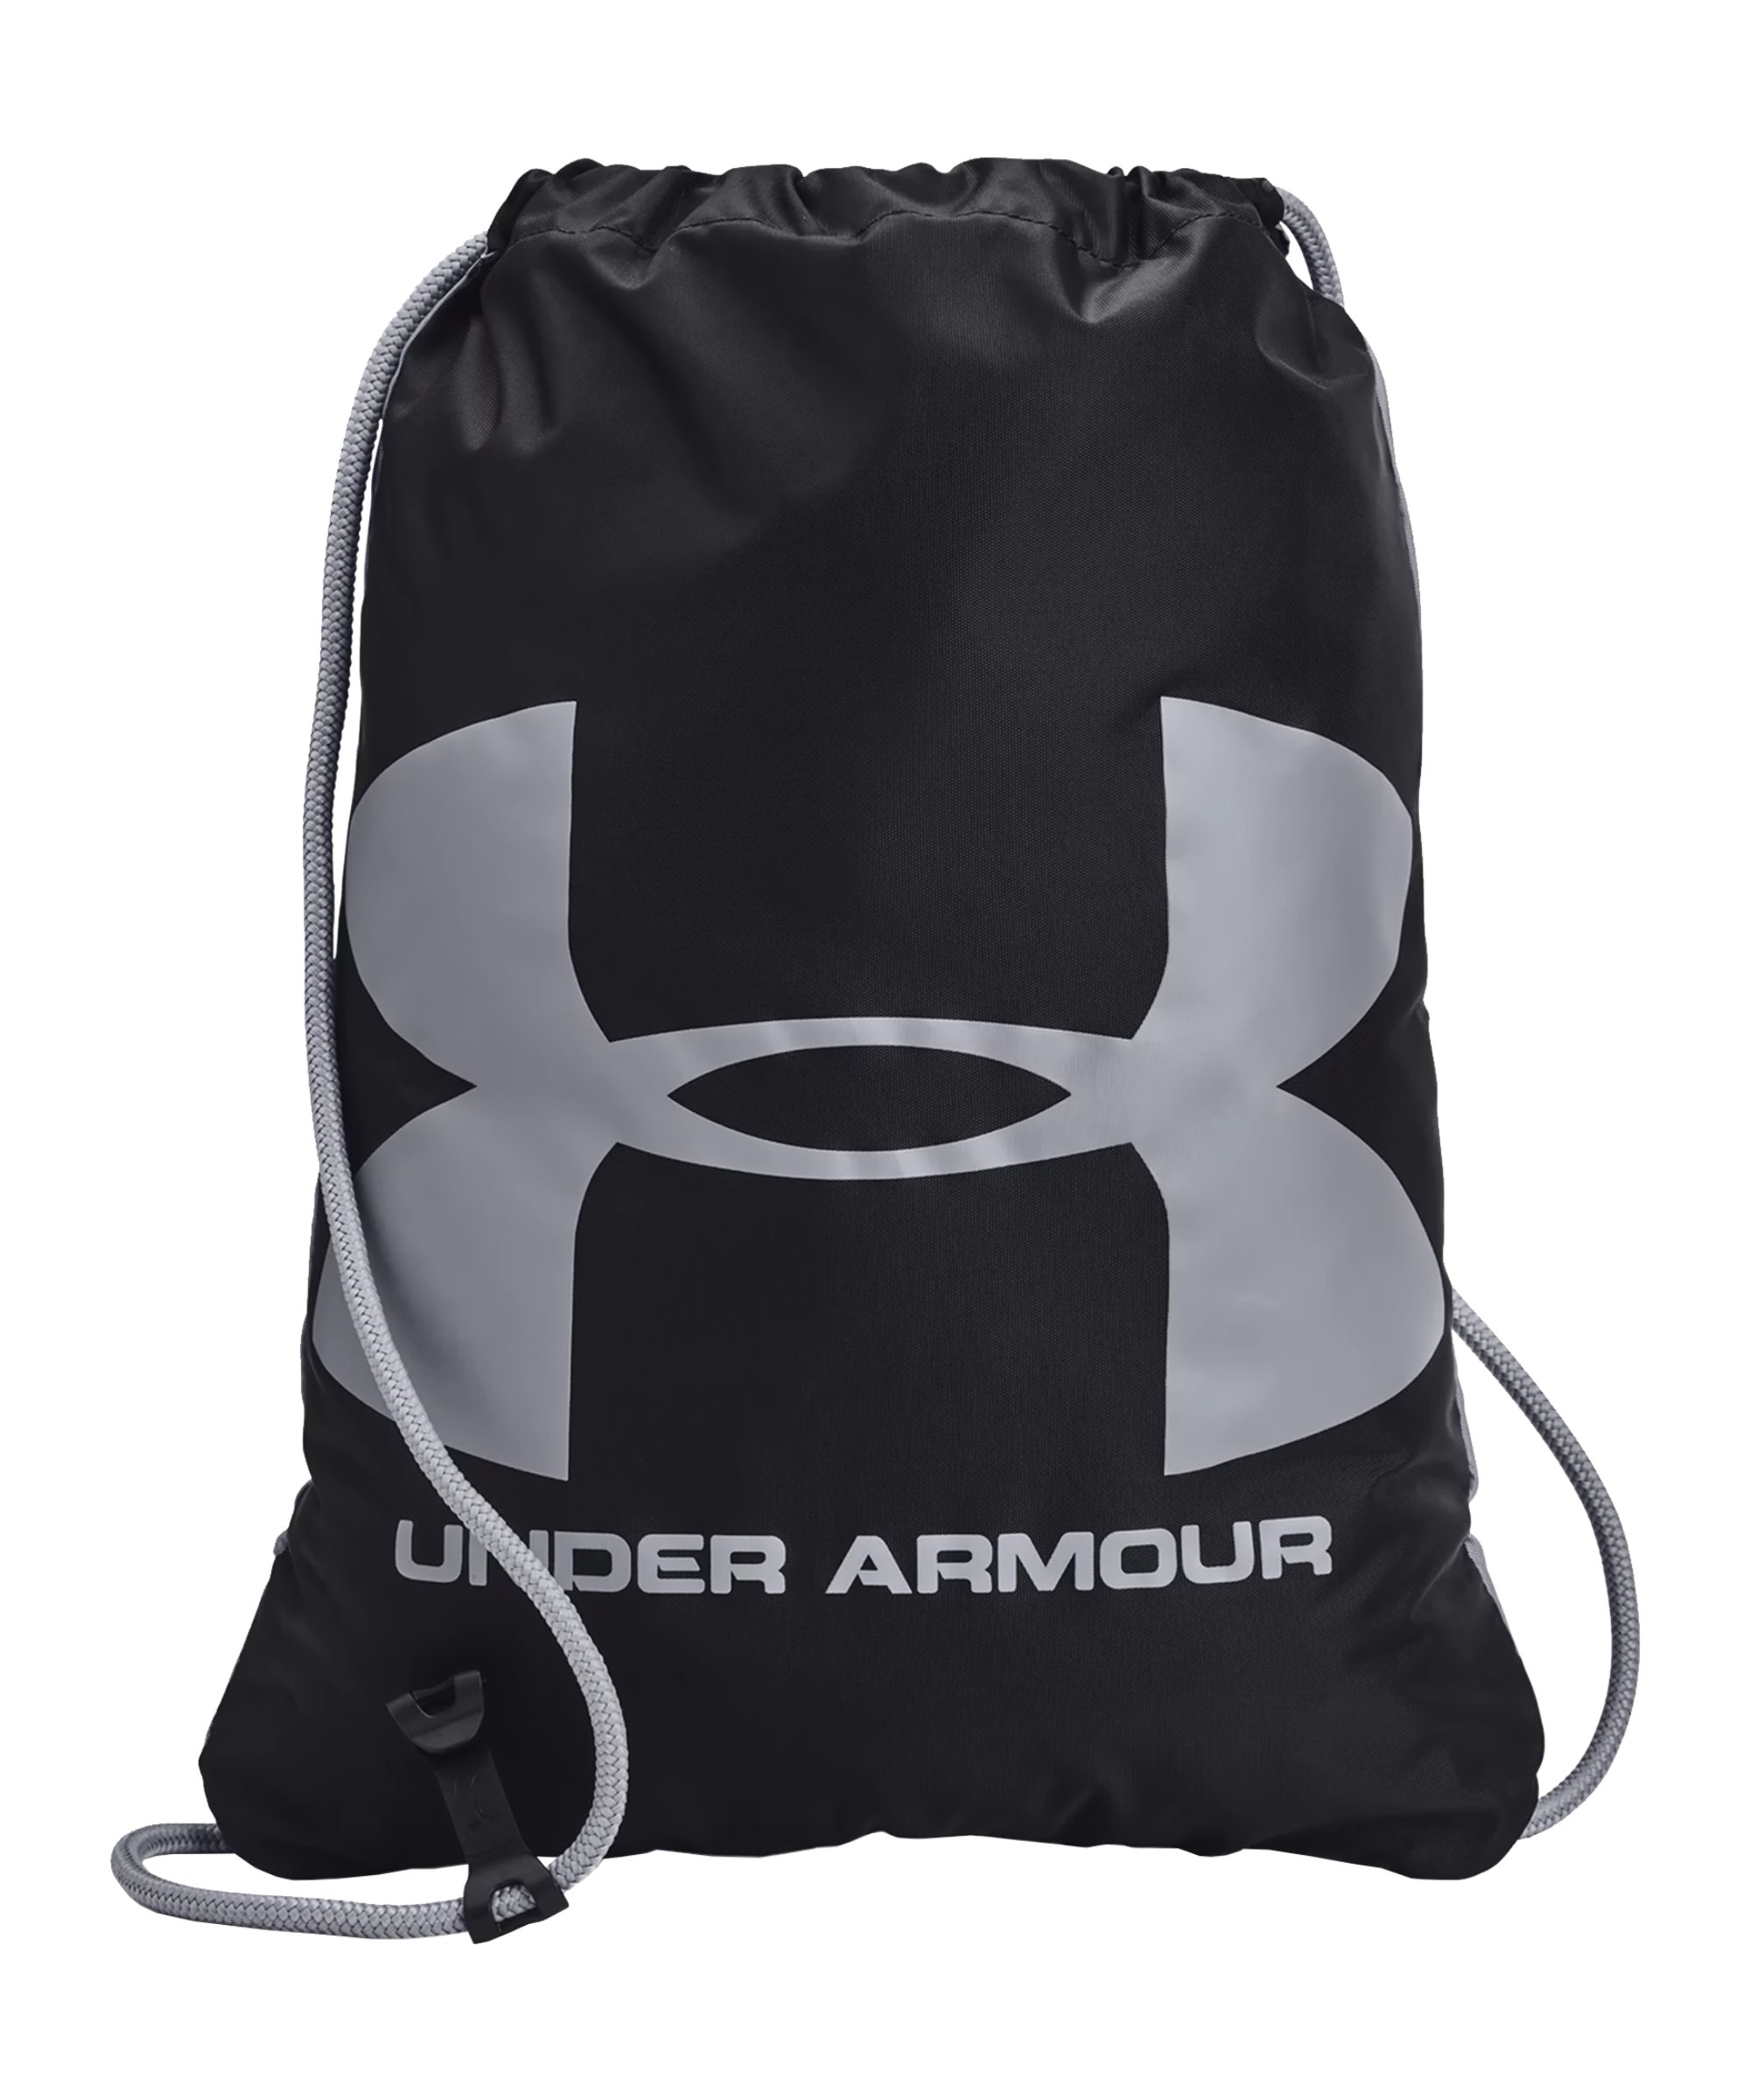 Under Armour Ozsee Sackpack Sportbeutel F005 - schwarz